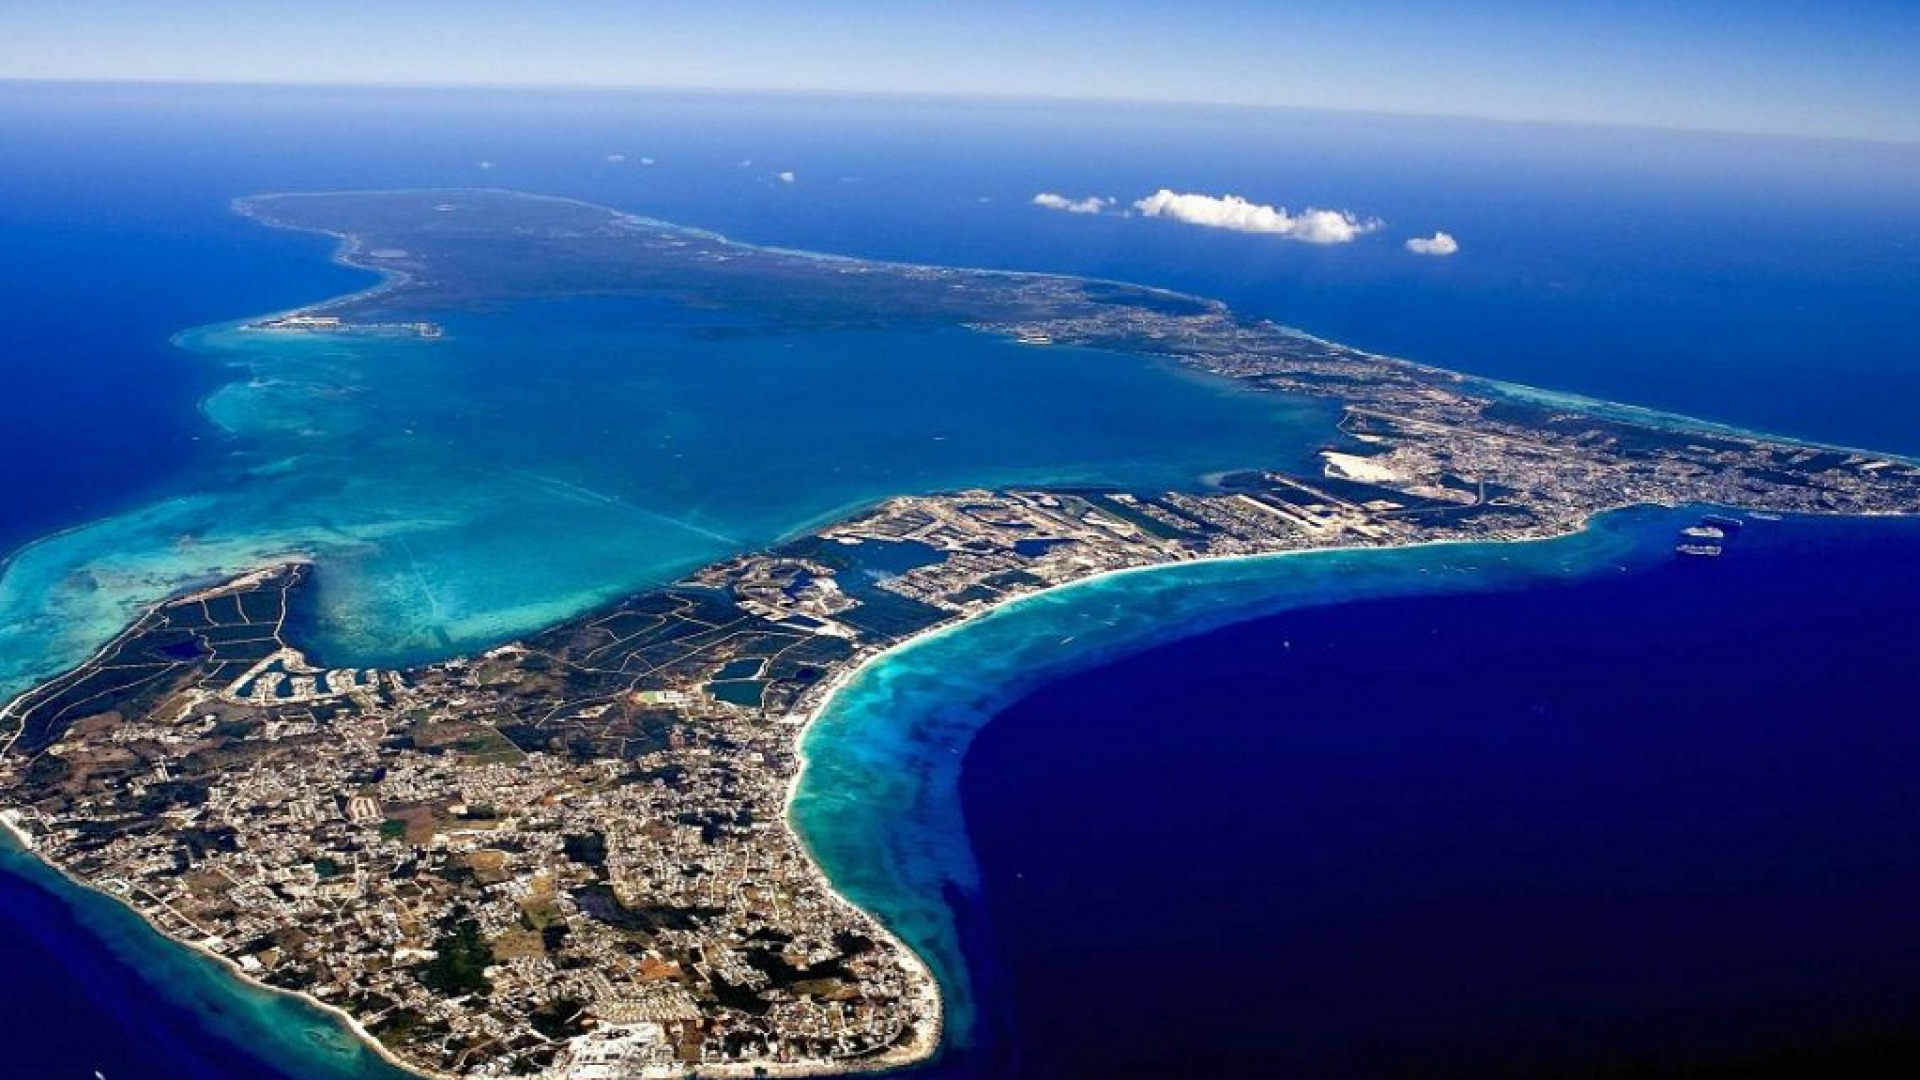 The island of Grand Cayman is one of the more tropical ports on a Western Caribbean voyage.